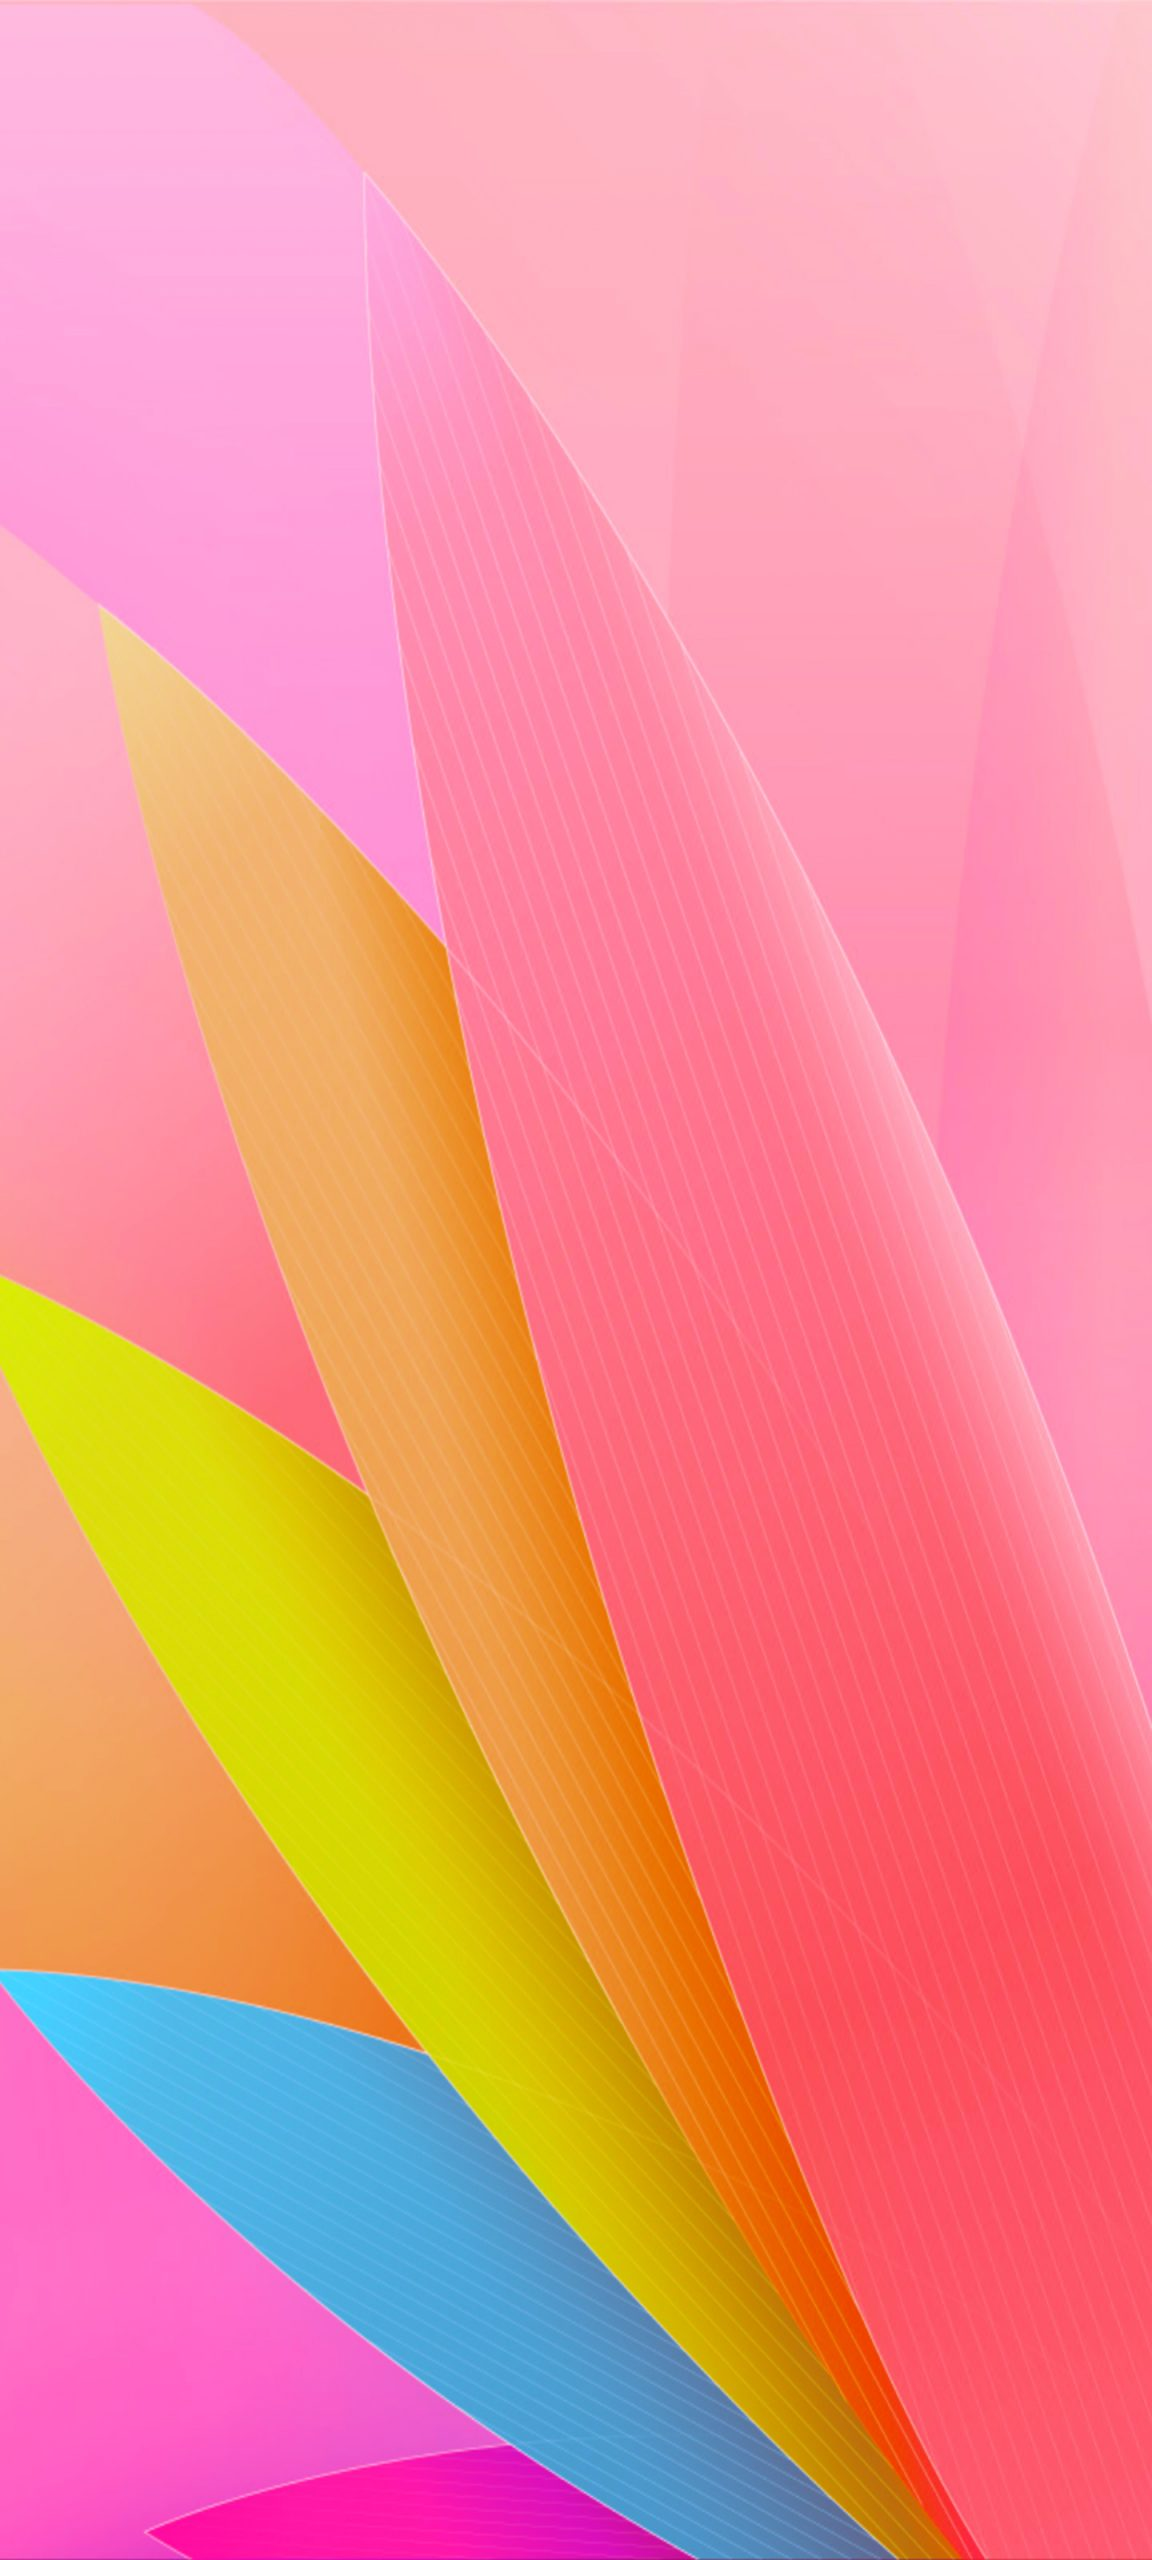 10 Wallpapers That Will Look Perfect On Your Samsung Galaxy S20 01 Colorful Geometrics Hd Wallpapers Wallpapers Download High Resolution Wallpapers